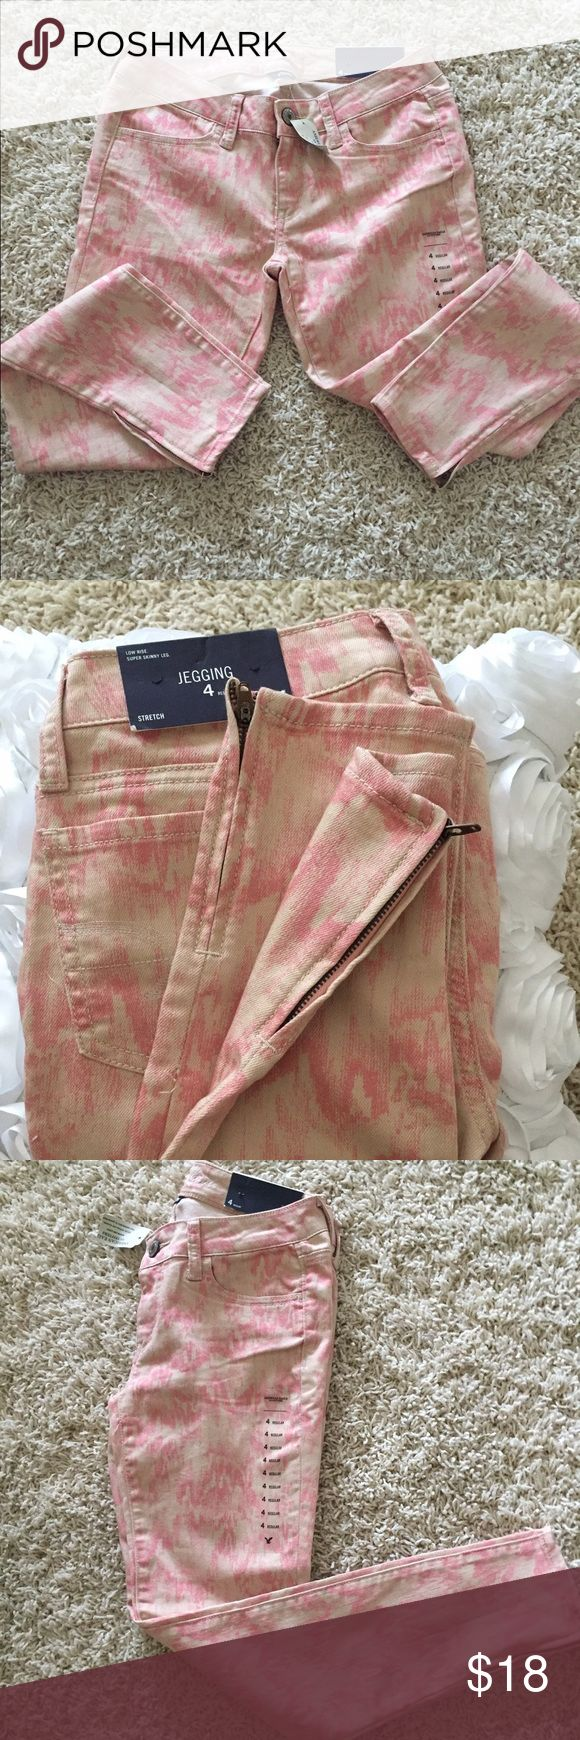 Nwt AMERICAN EAGLE PINK JEGGINGS SKINNY New with tag American Eagle jeggings color pink,denim stretchy,zipper boots, leggings jeans  size 4 American Eagle Outfitters Jeans Skinny